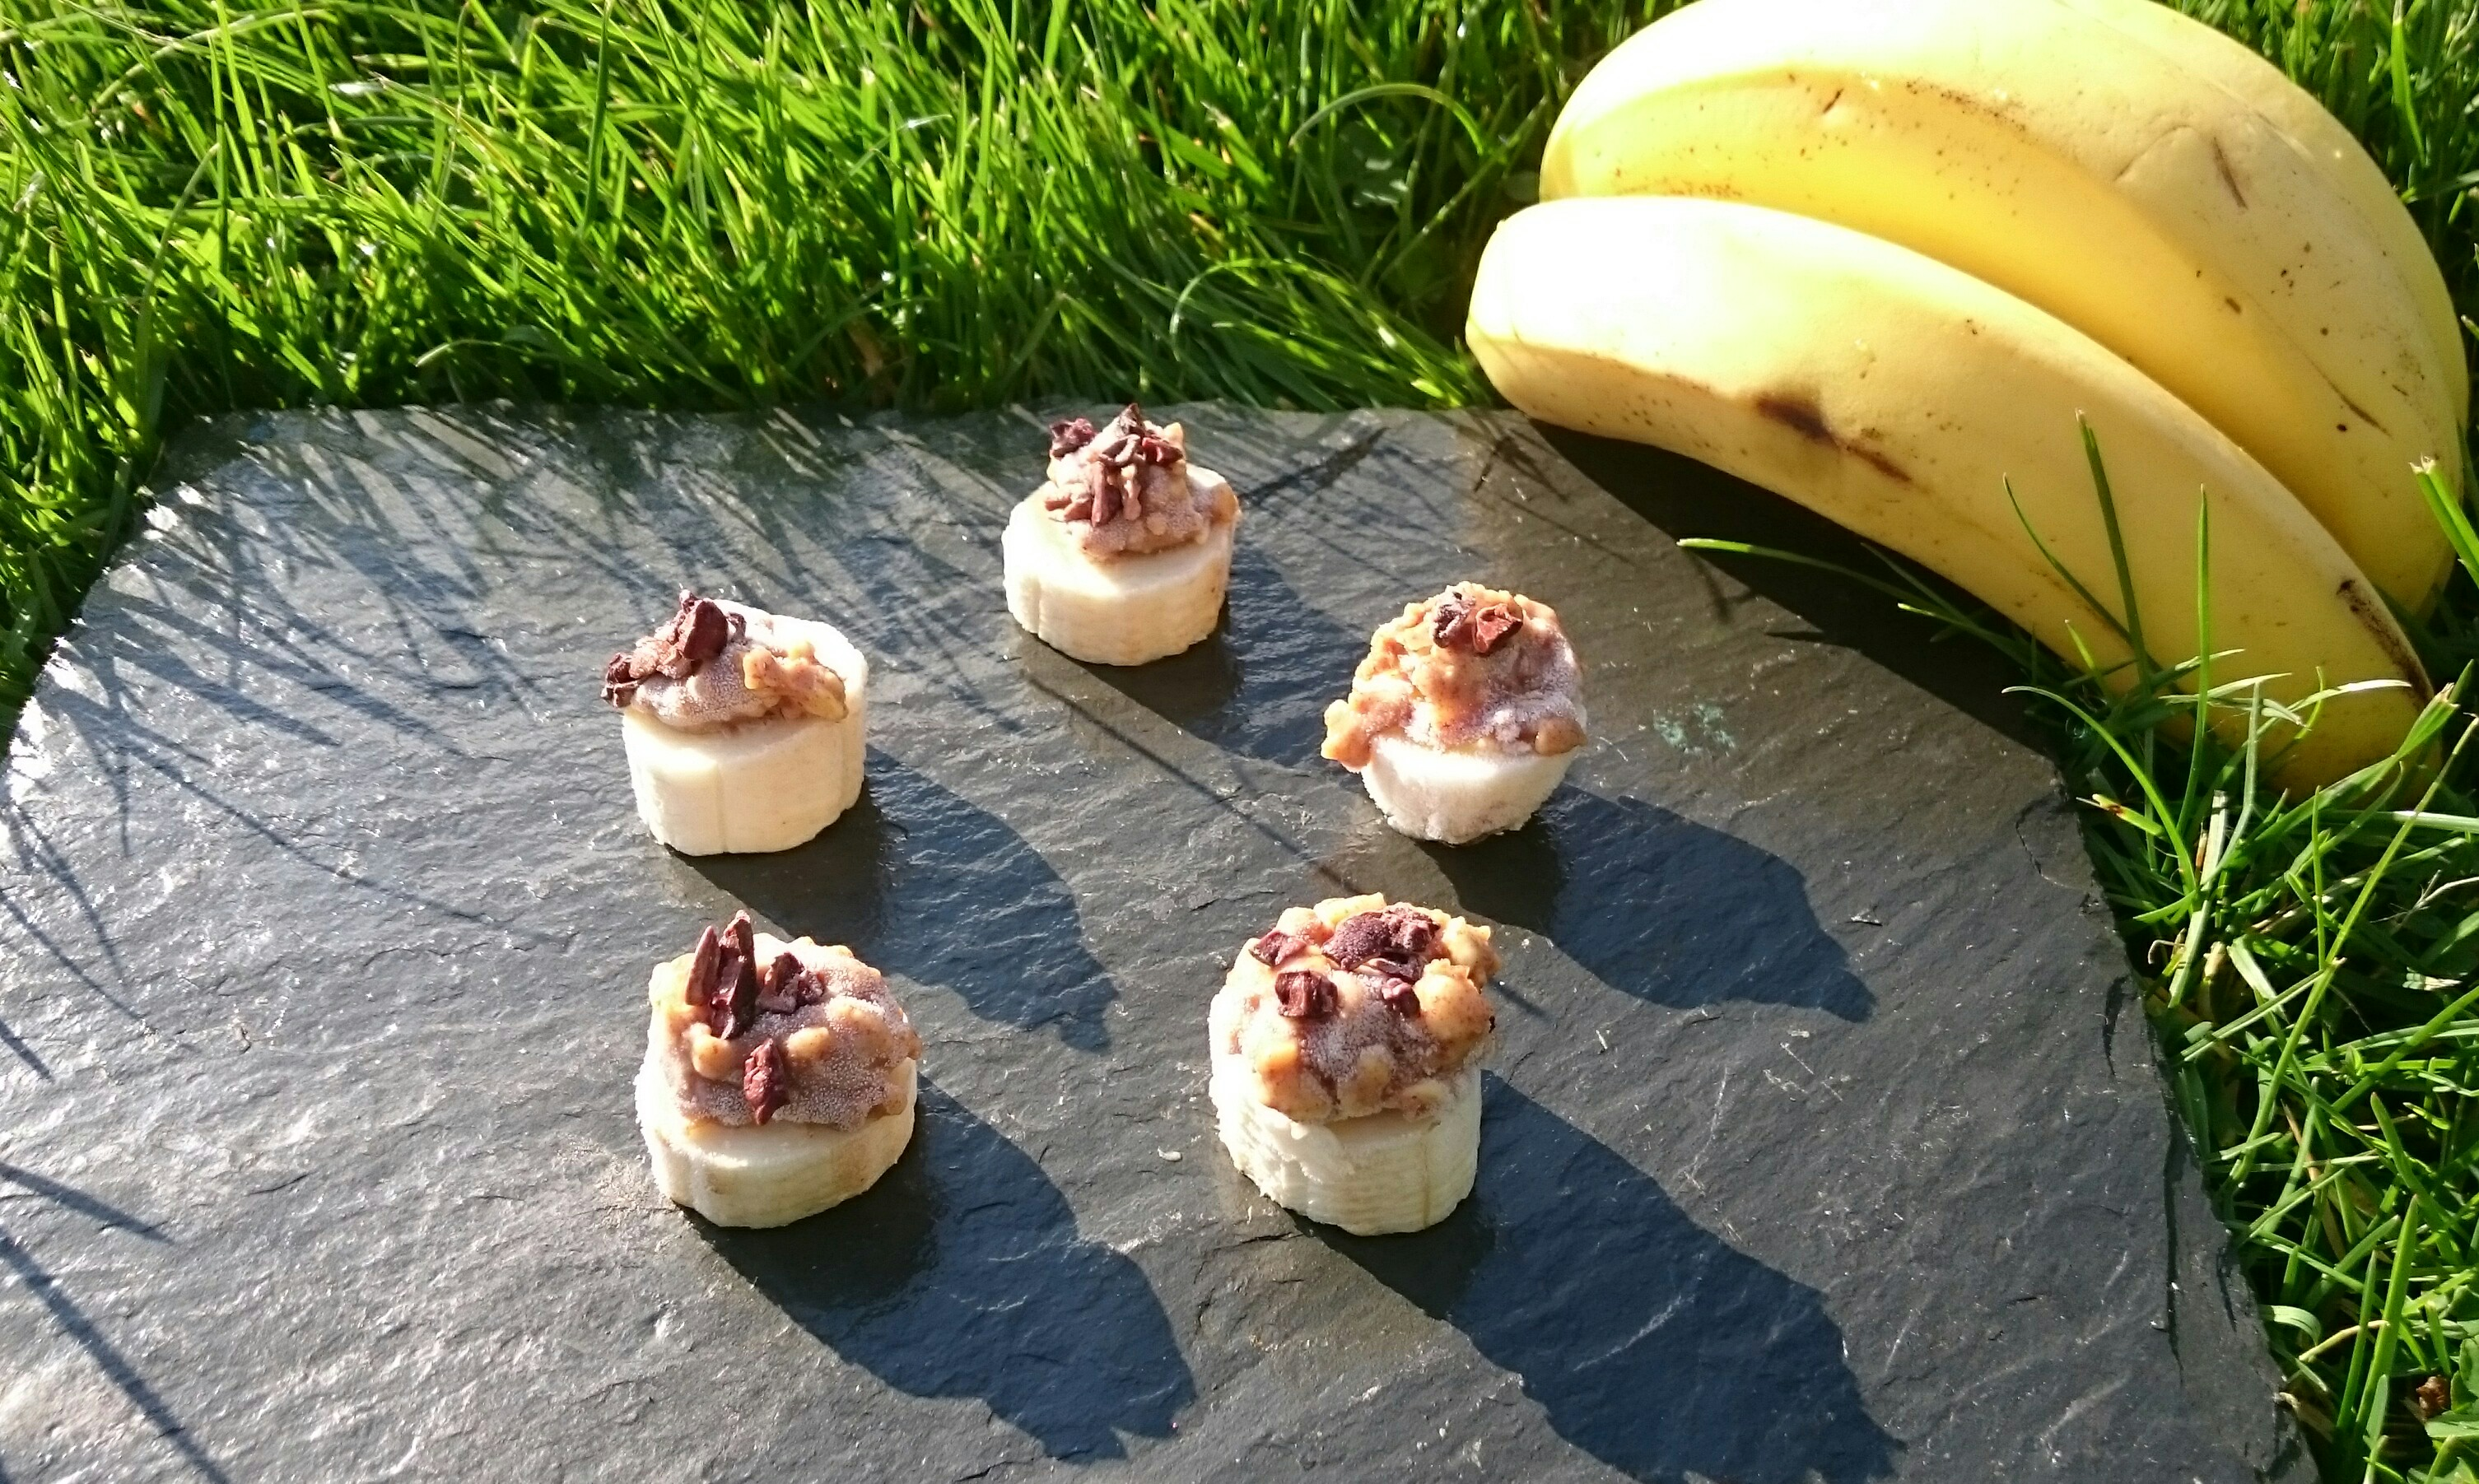 Bananas as Sugar Free Treats